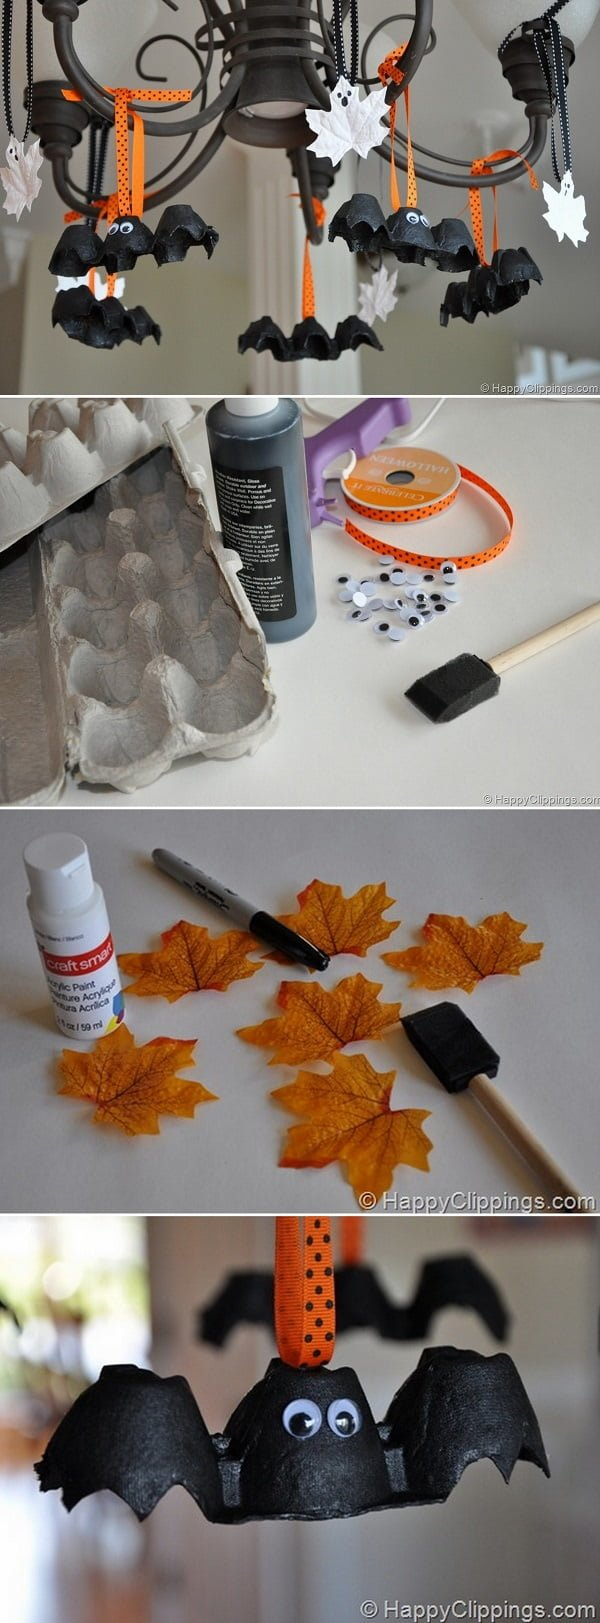 Check out the tutorial on how to make DIY egg cartoon bats and leaf ghosts for Halloween home decoration